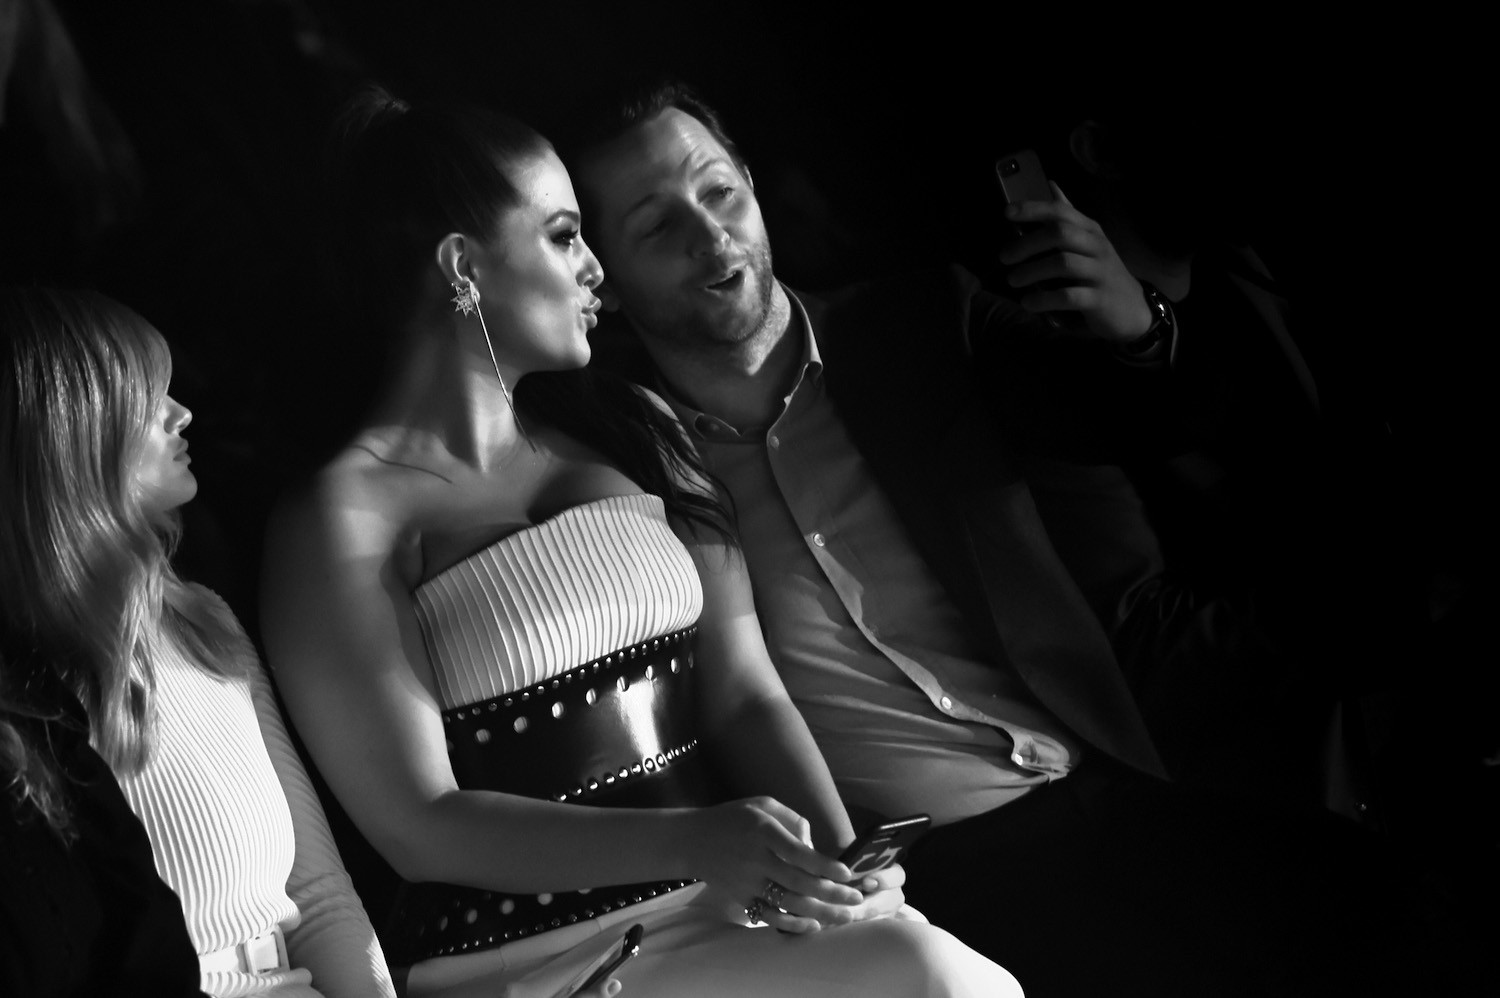 NEW YORK, NY - FEBRUARY 11: (EDITORS NOTE: Image has been converted to black and white.) Ashley Graham and Derek Blasberg attend the Brandon Maxwell front row during New York Fashion Week: The Shows at Appel Room on February 11, 2018 in New York City. (Photo by Dimitrios Kambouris/Getty Images forNew York Fashion Week: The Shows)